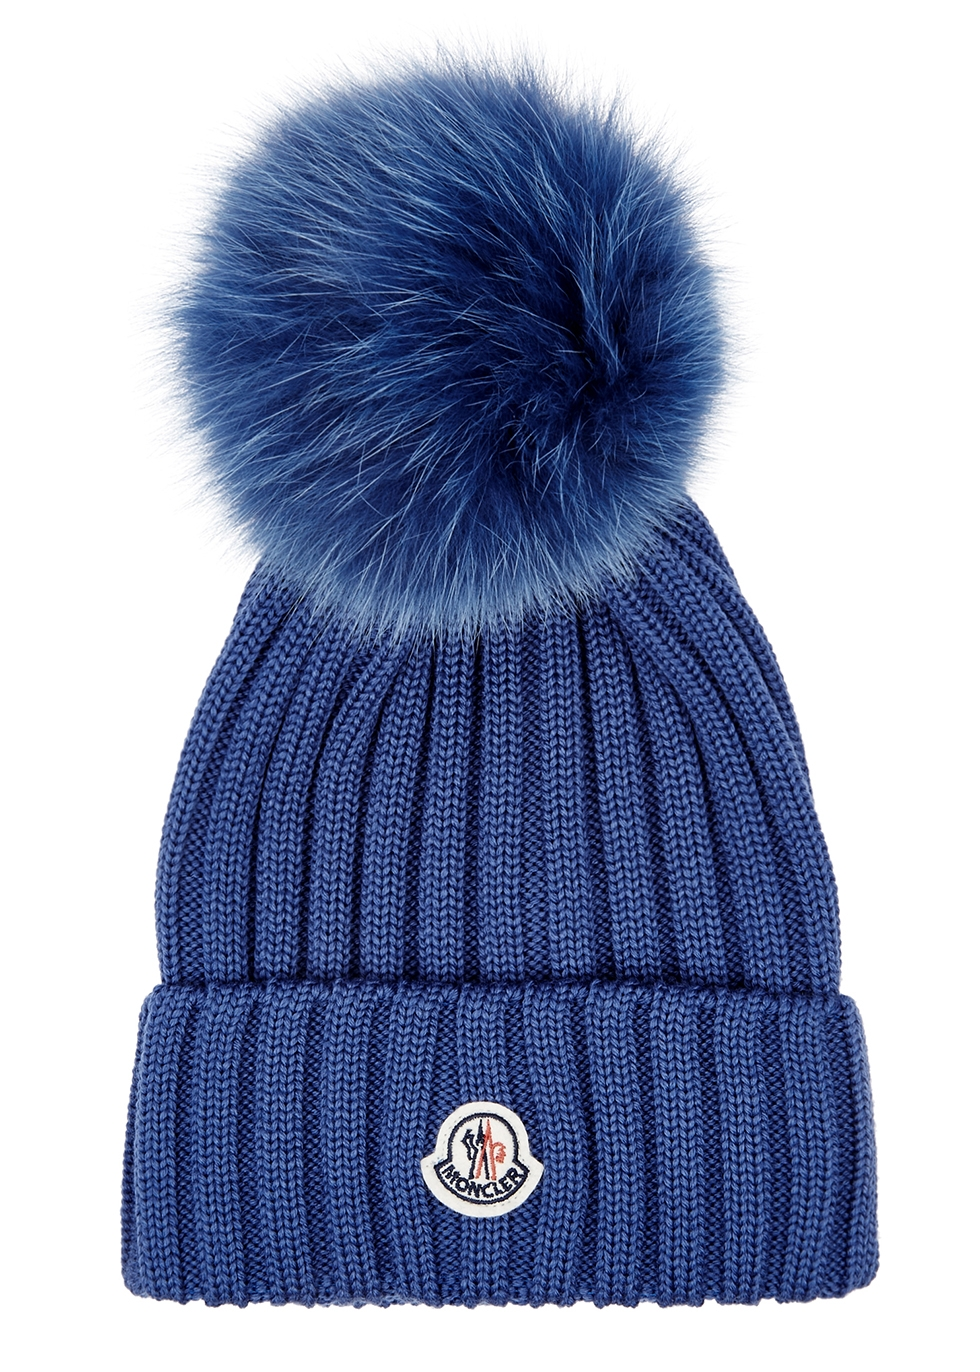 8e4cd2c3d779c Designer Beanies - Women s Luxury Hats - Harvey Nichols